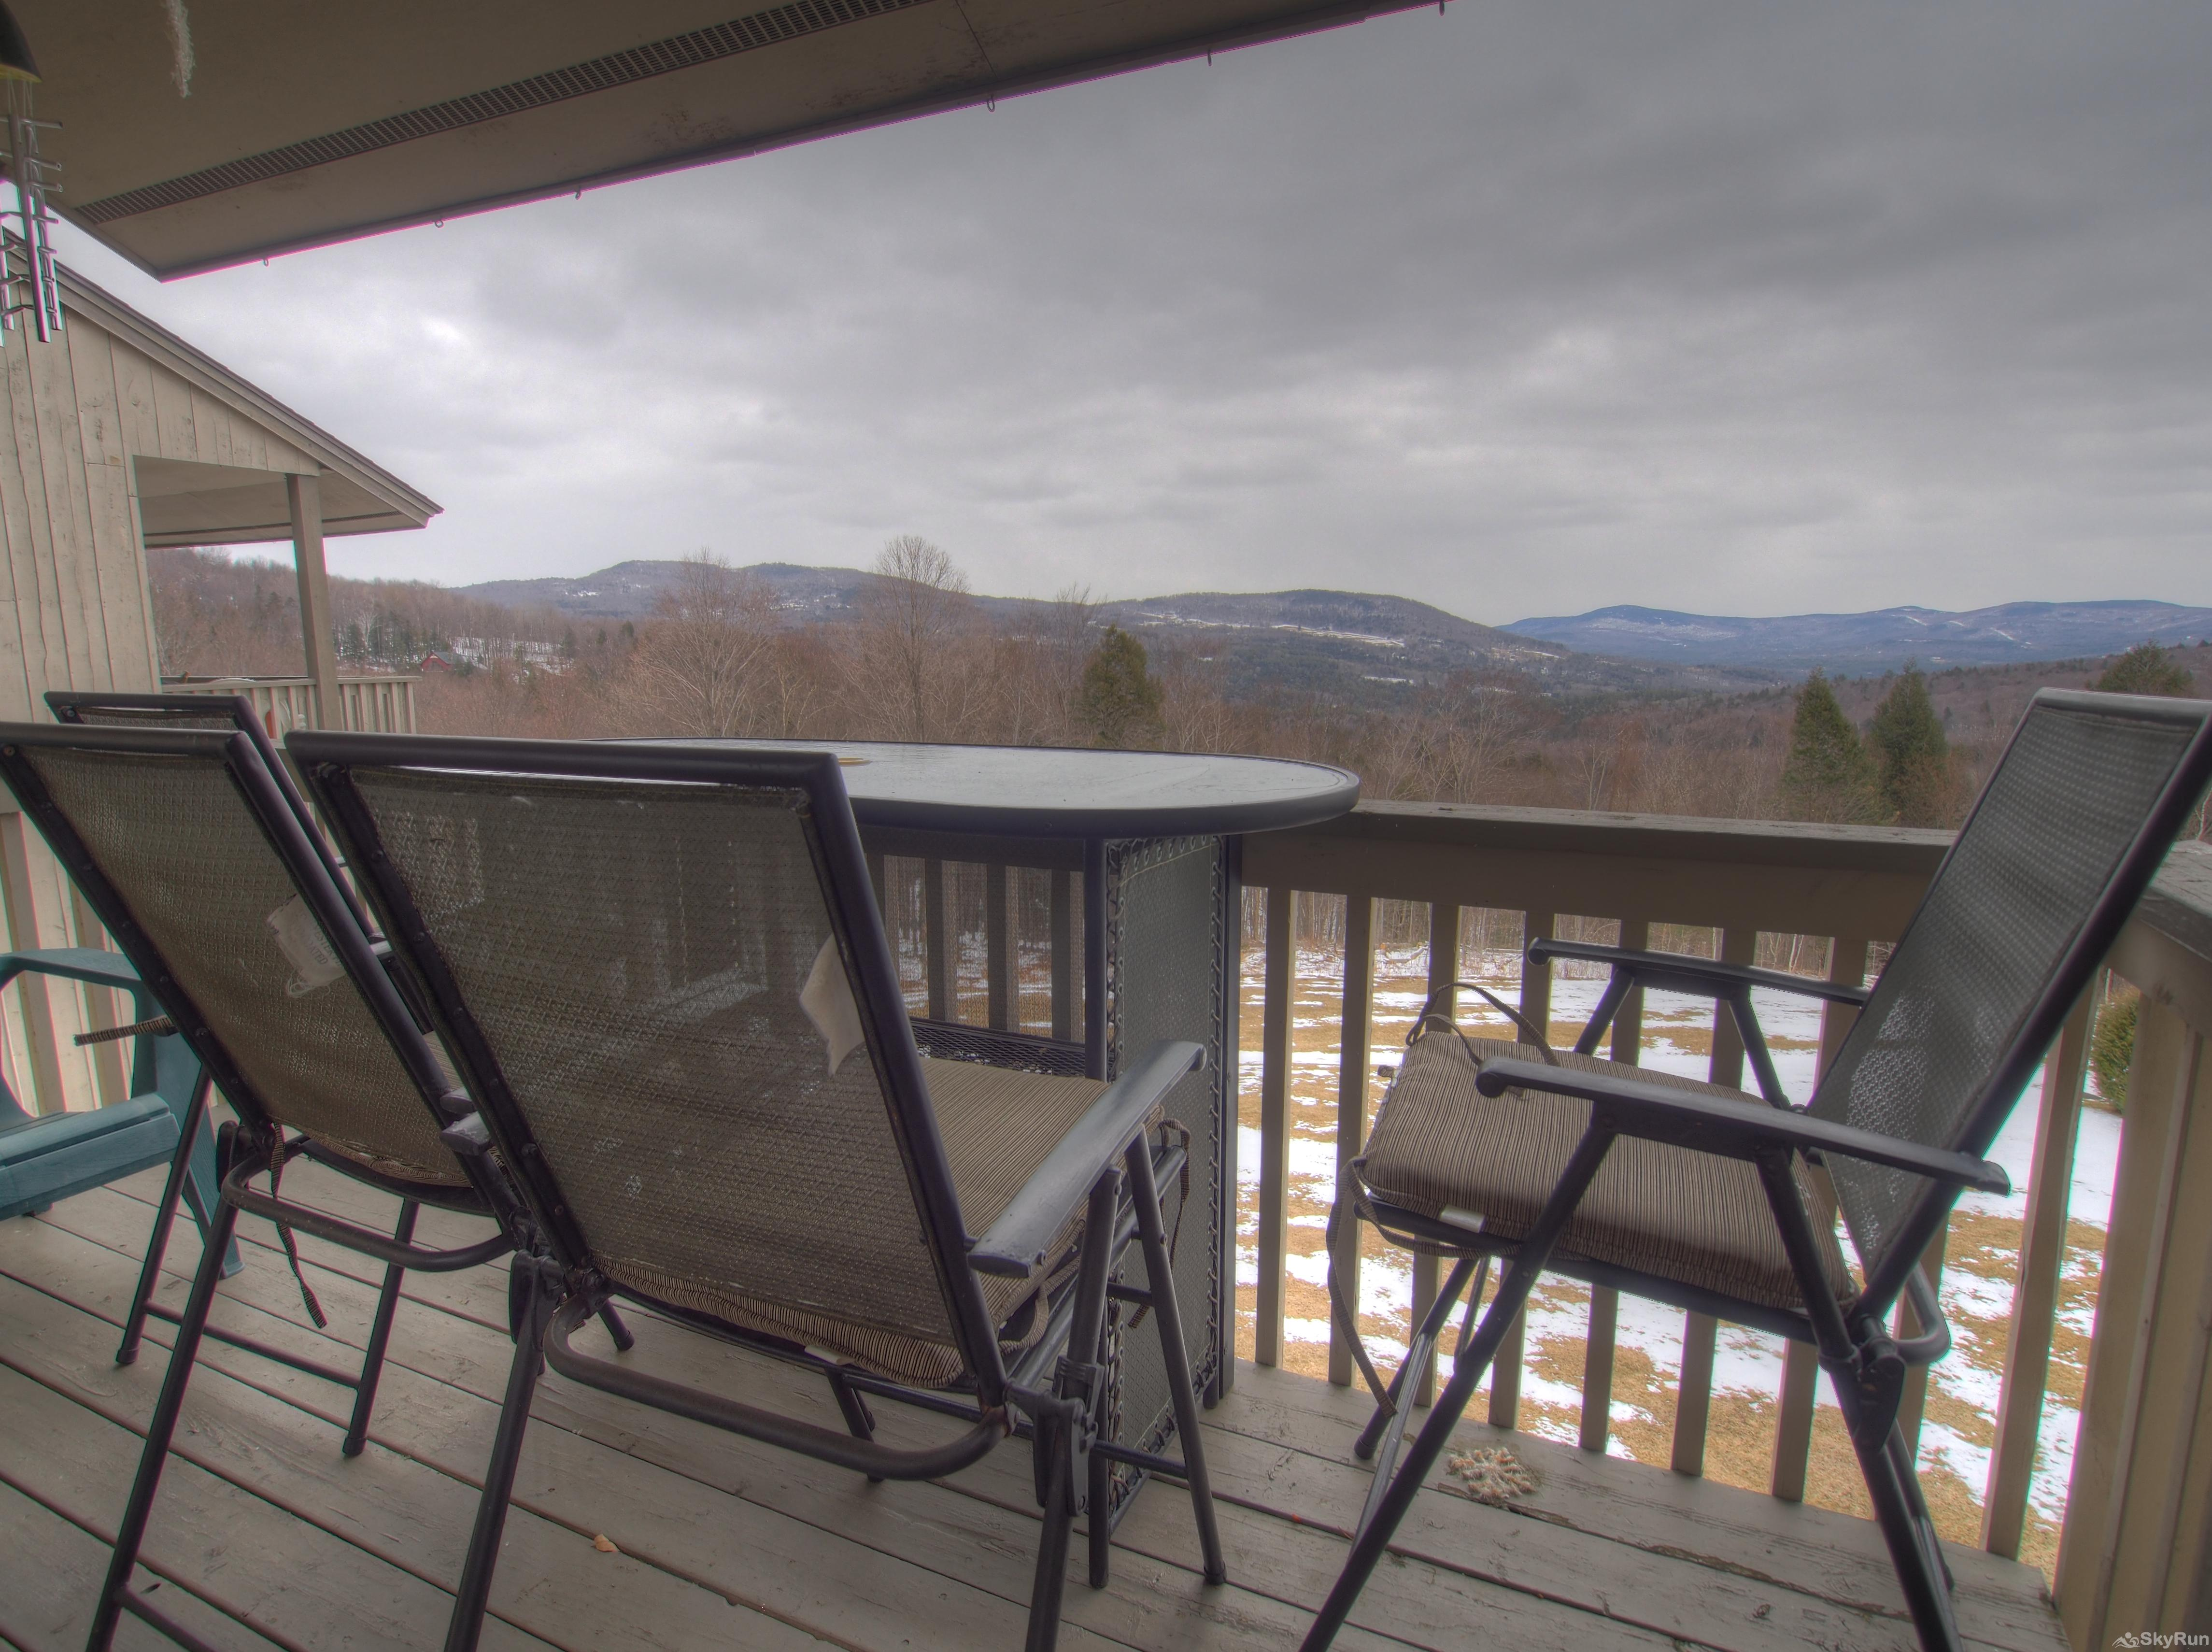 14 Snowside Deck views